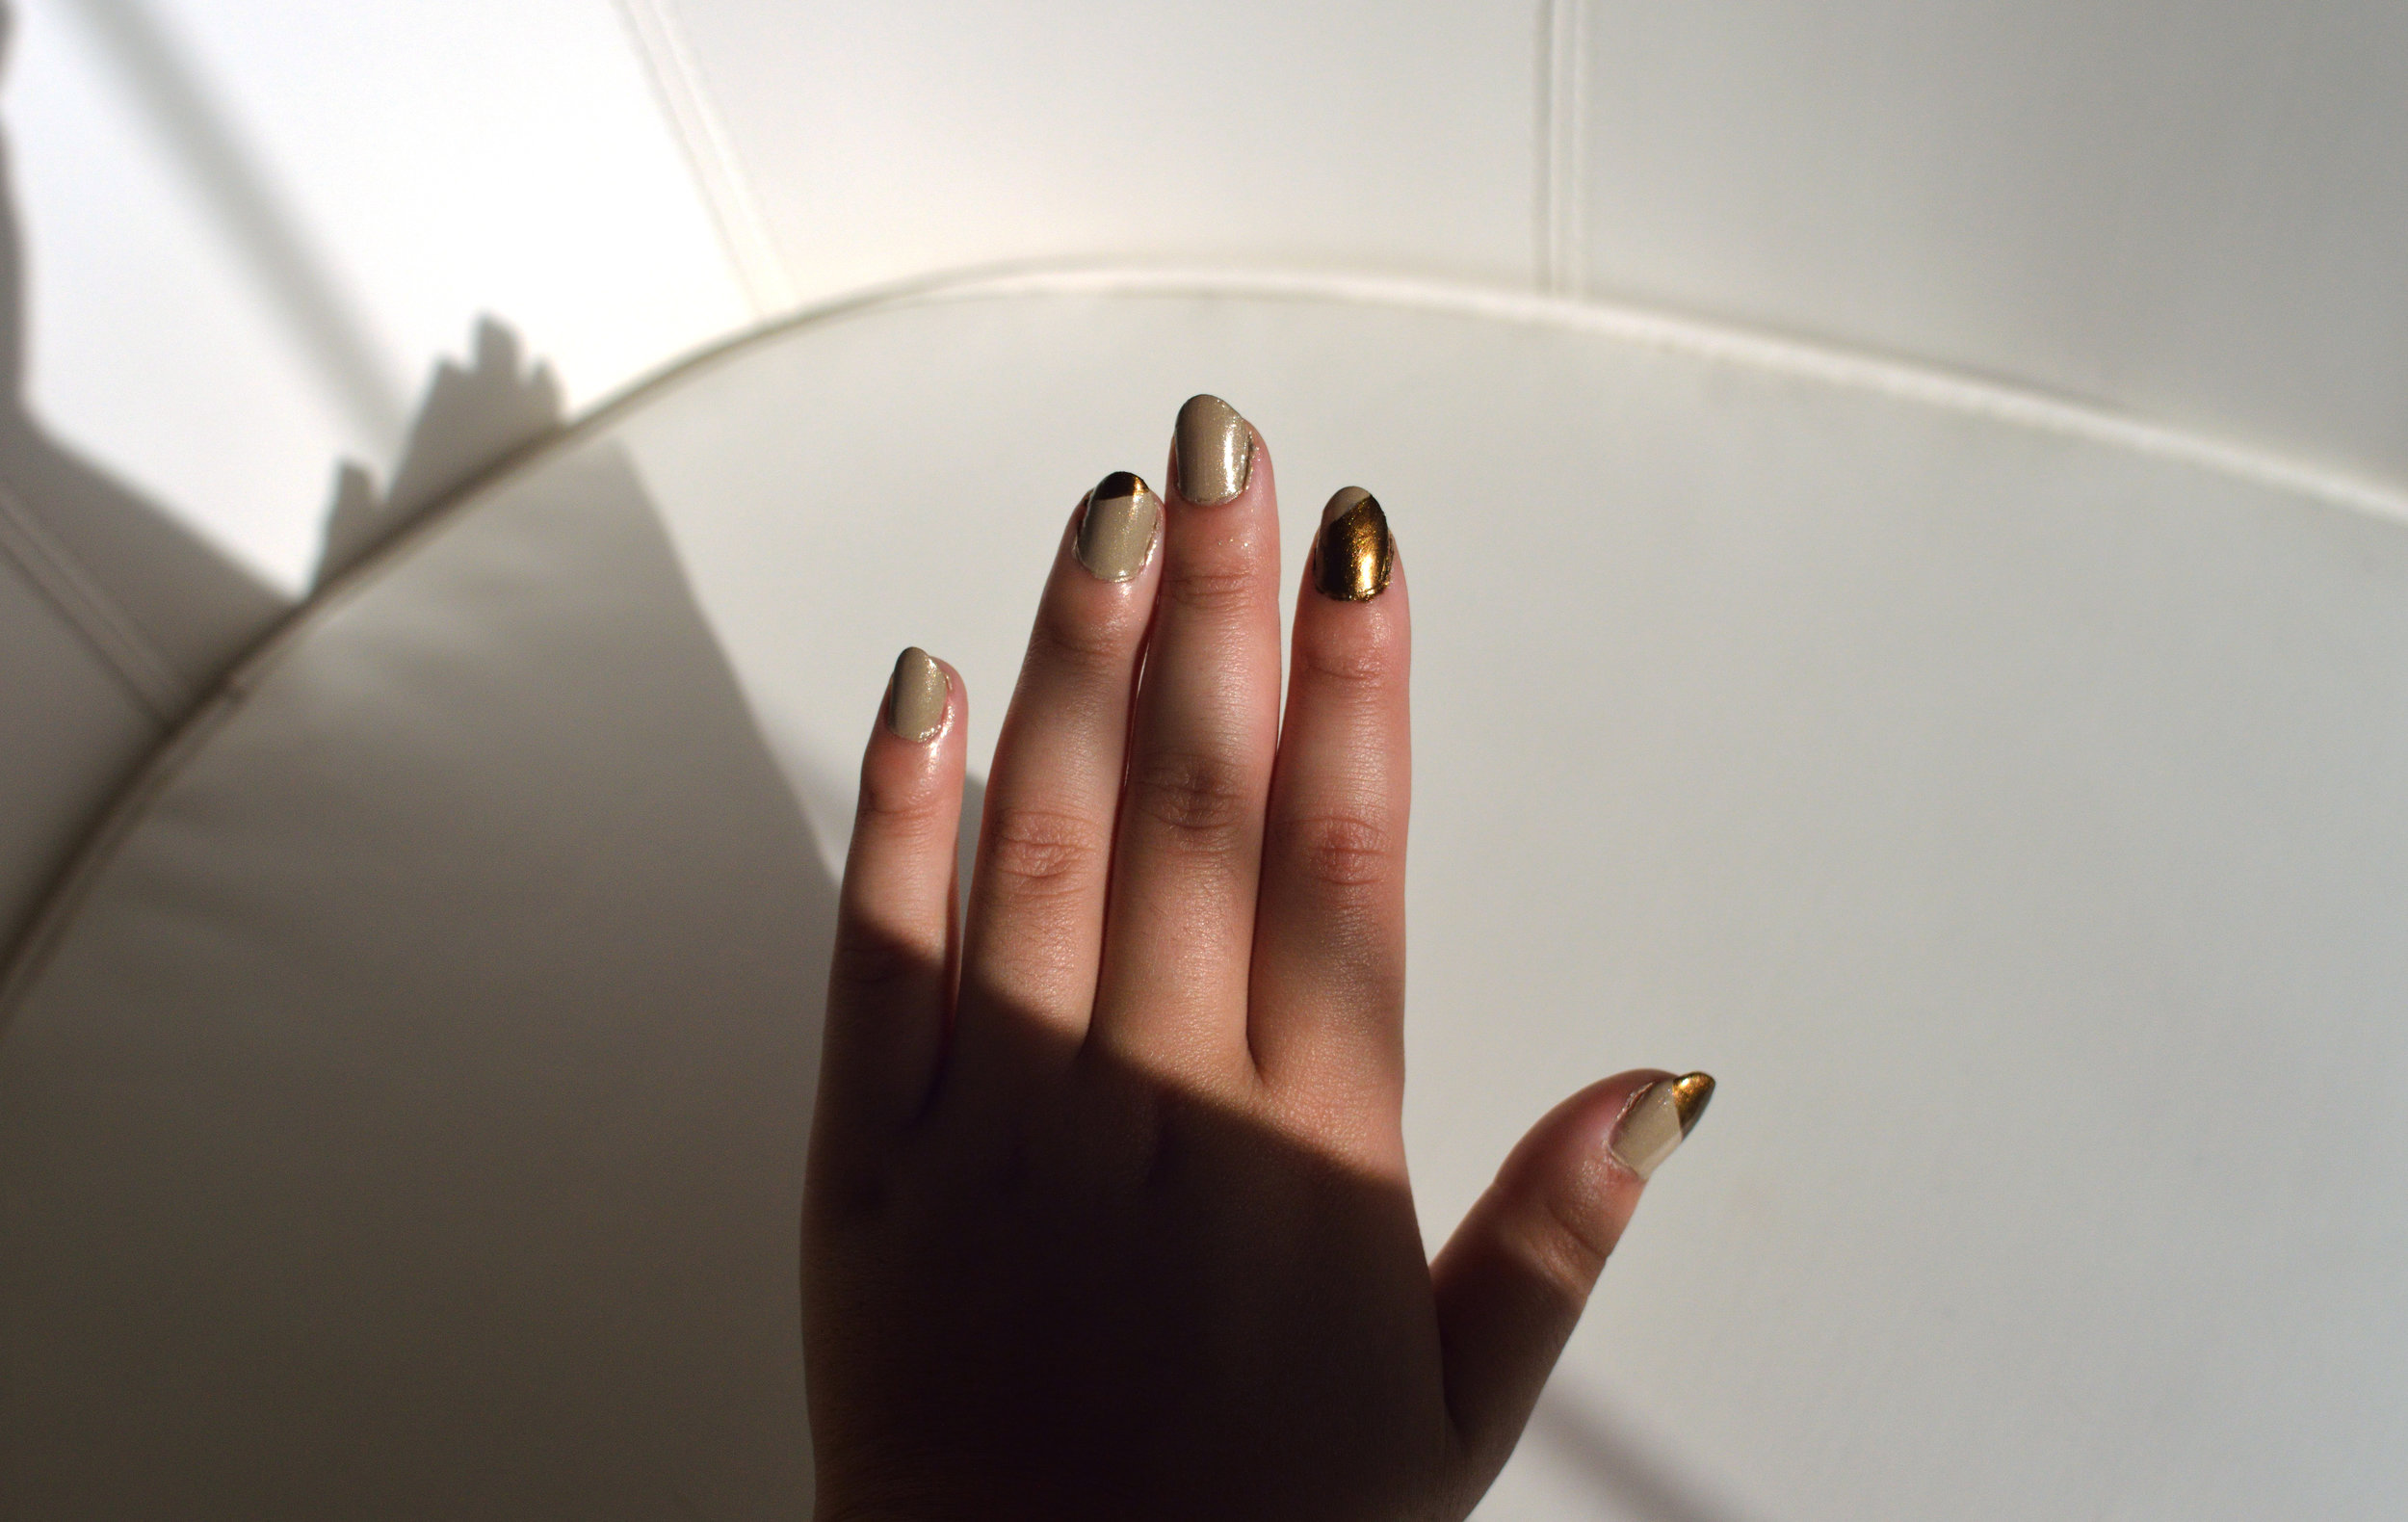 Gold nail polish manicure by Tiffany and Couture